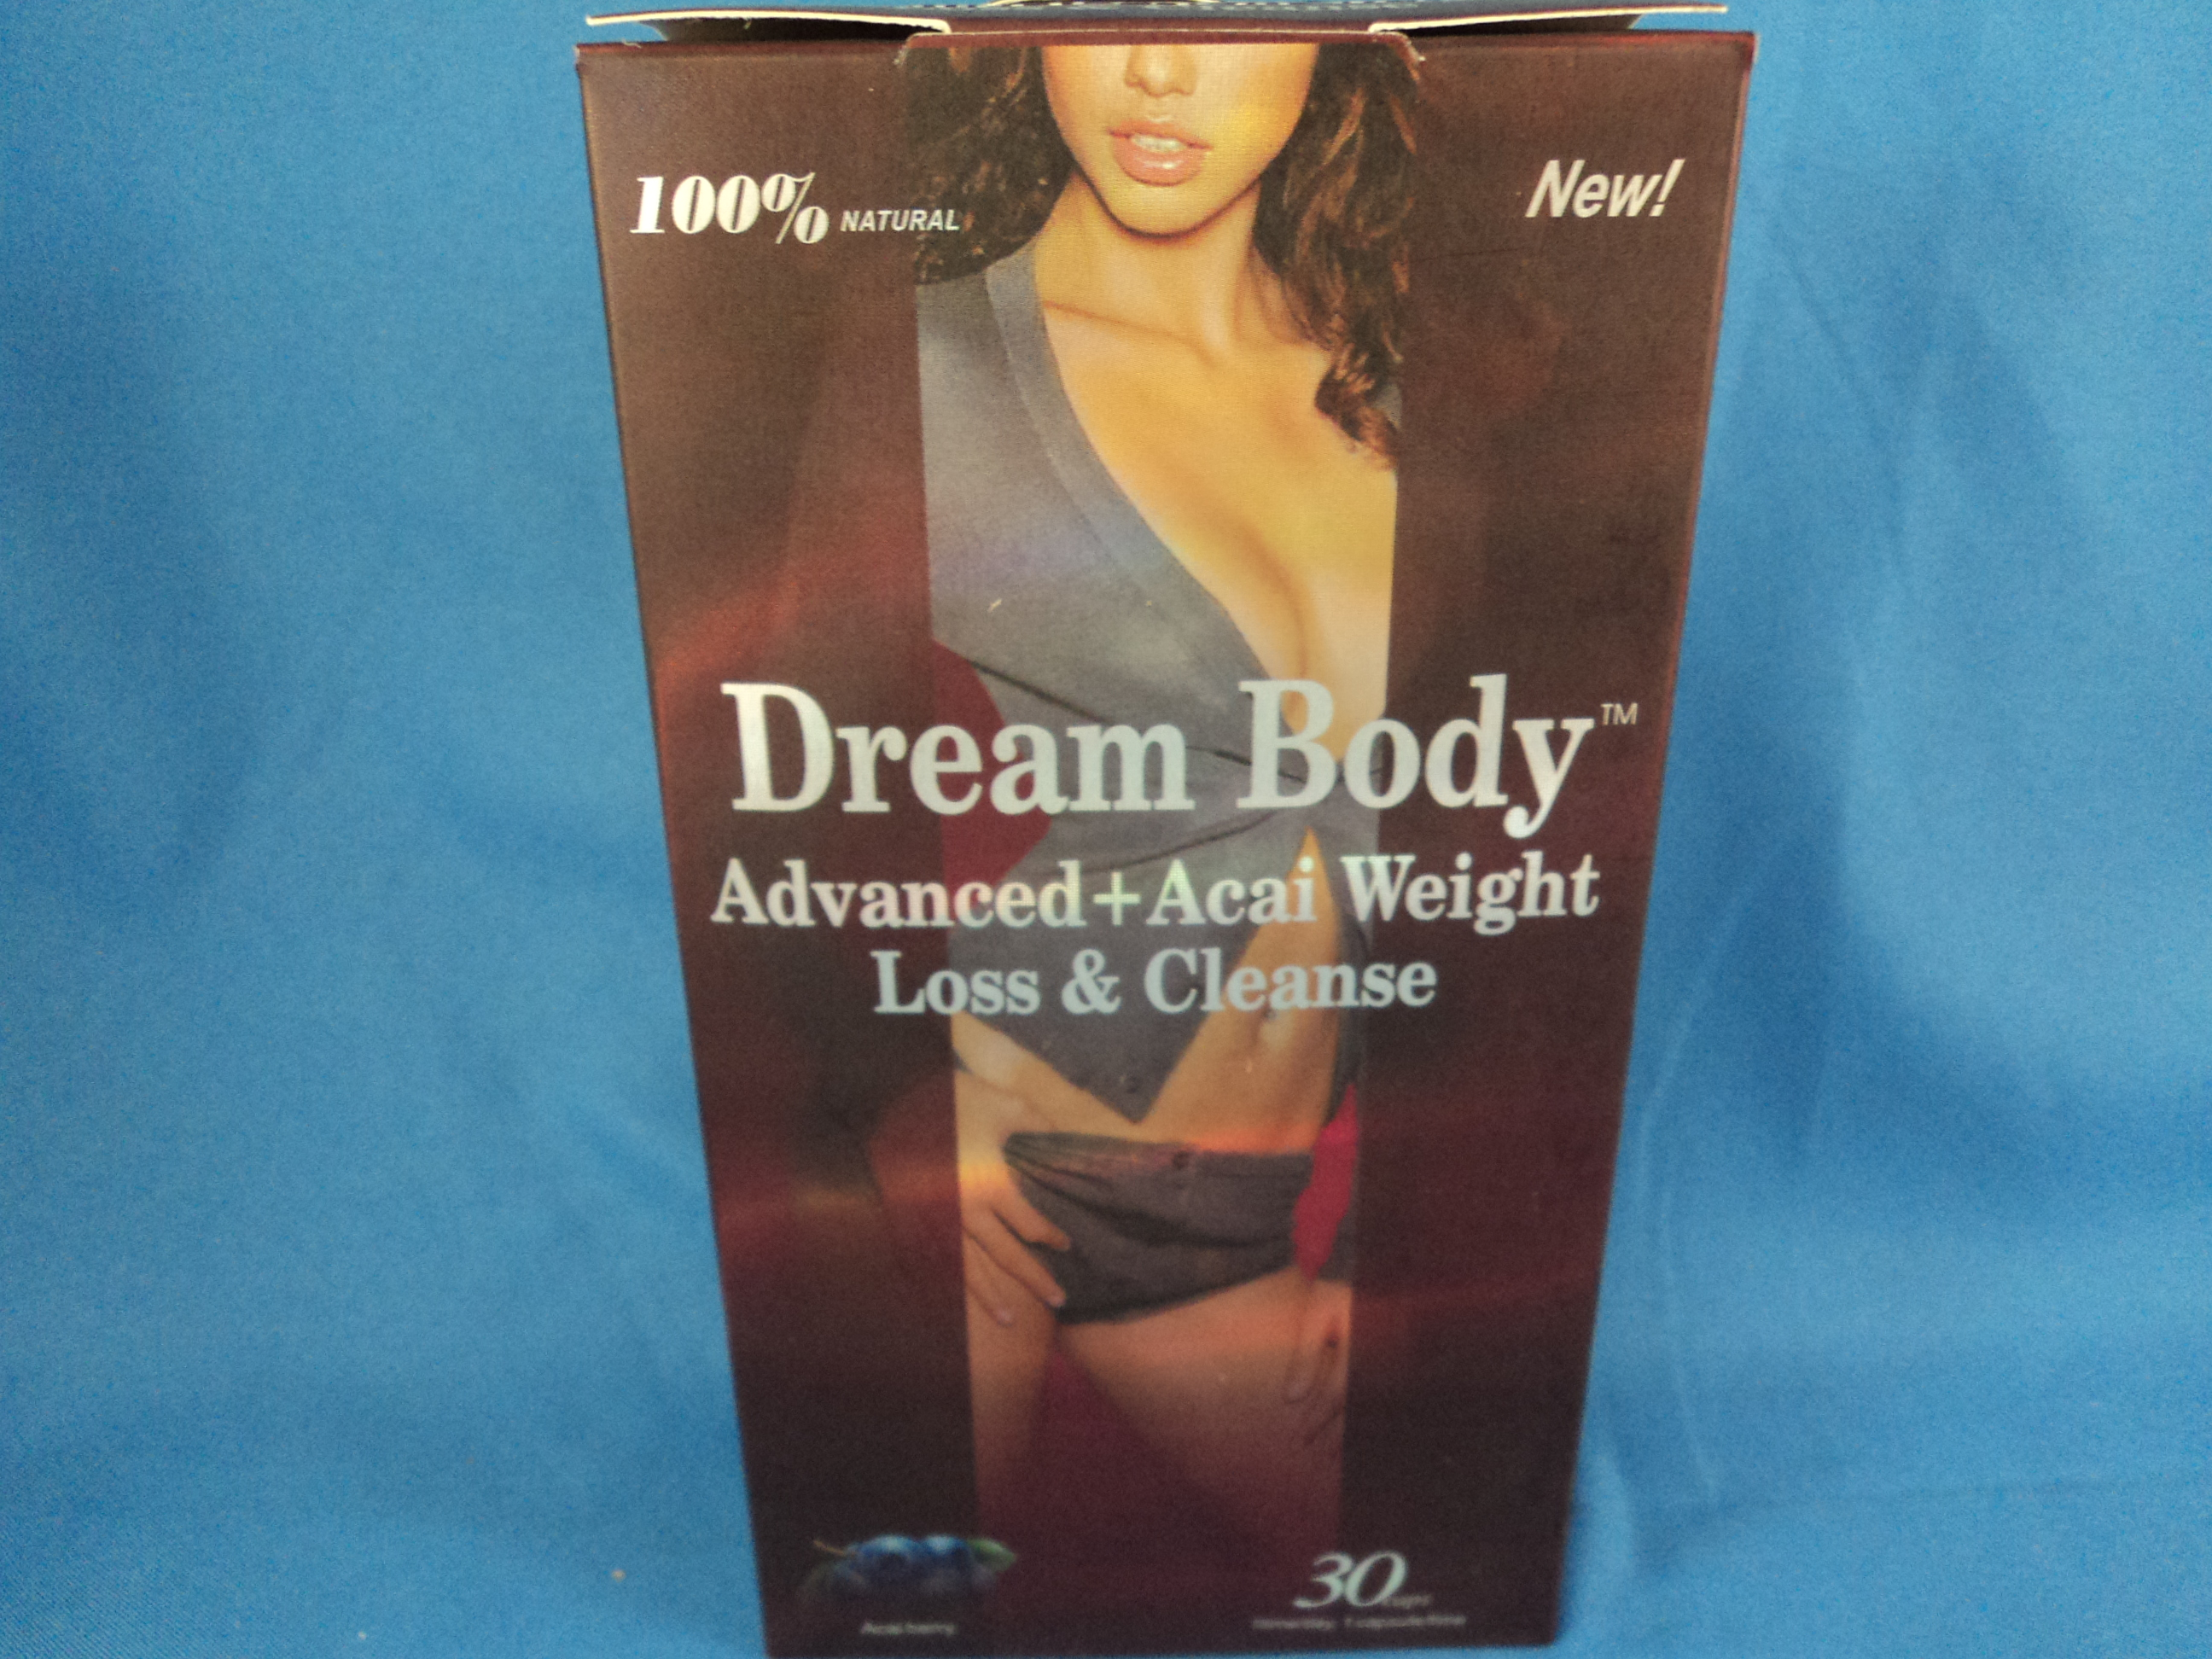 Image of the illigal product: Dream Body Advanced 400 mg